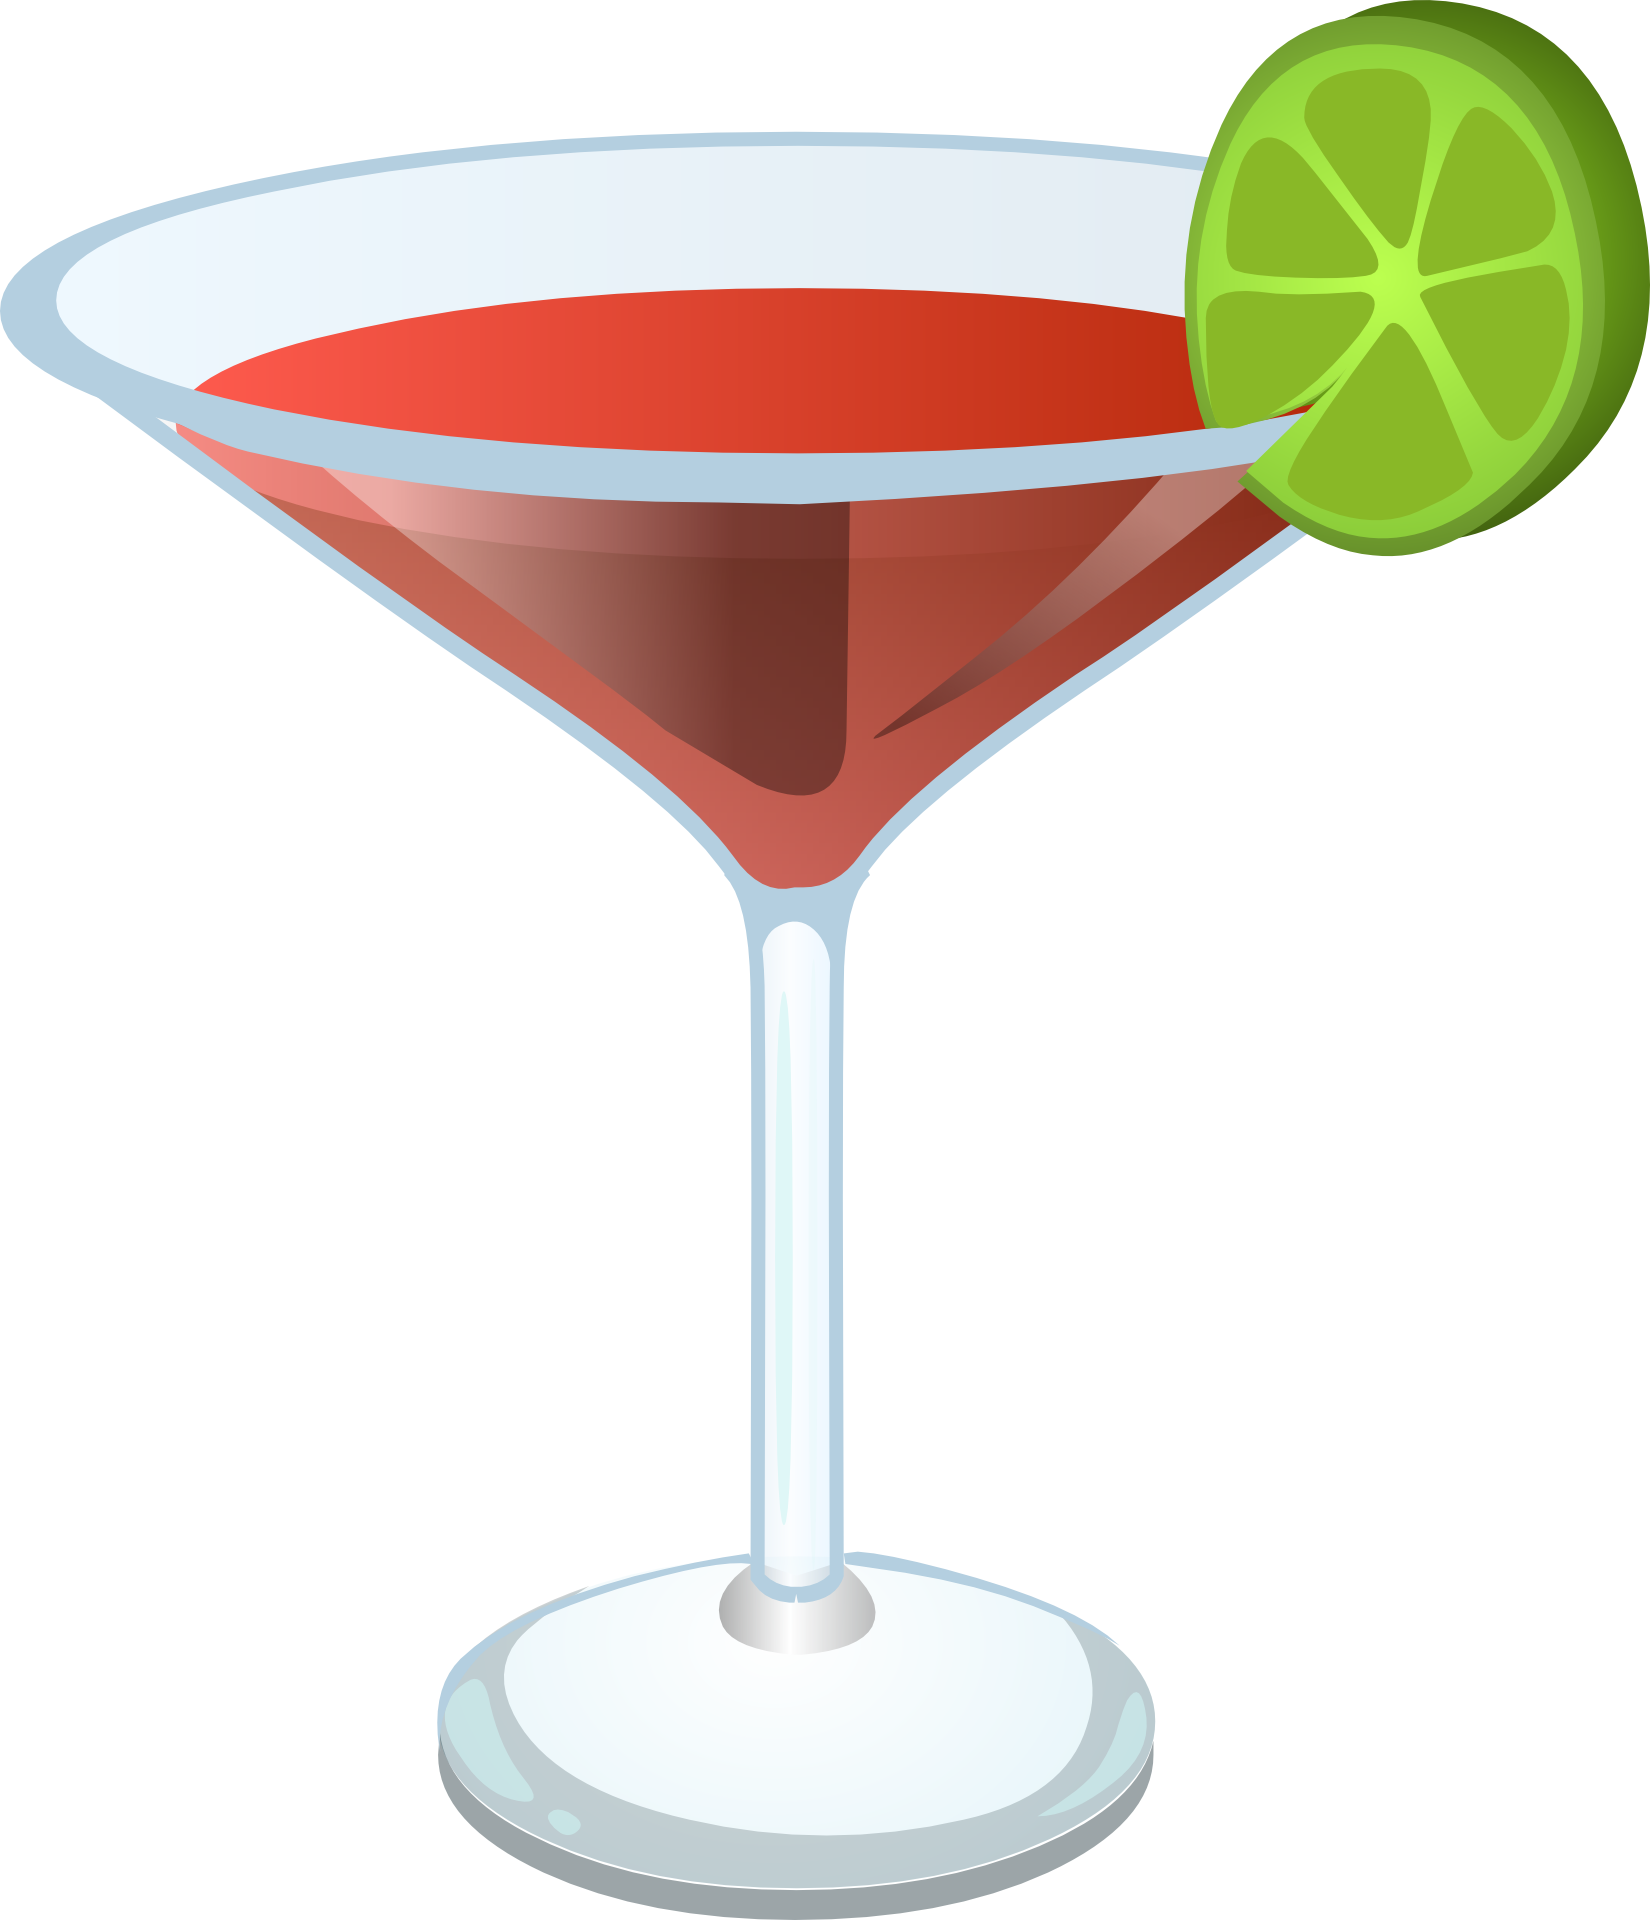 Red Cocktail In A Glass With Lime Drawing Free Image